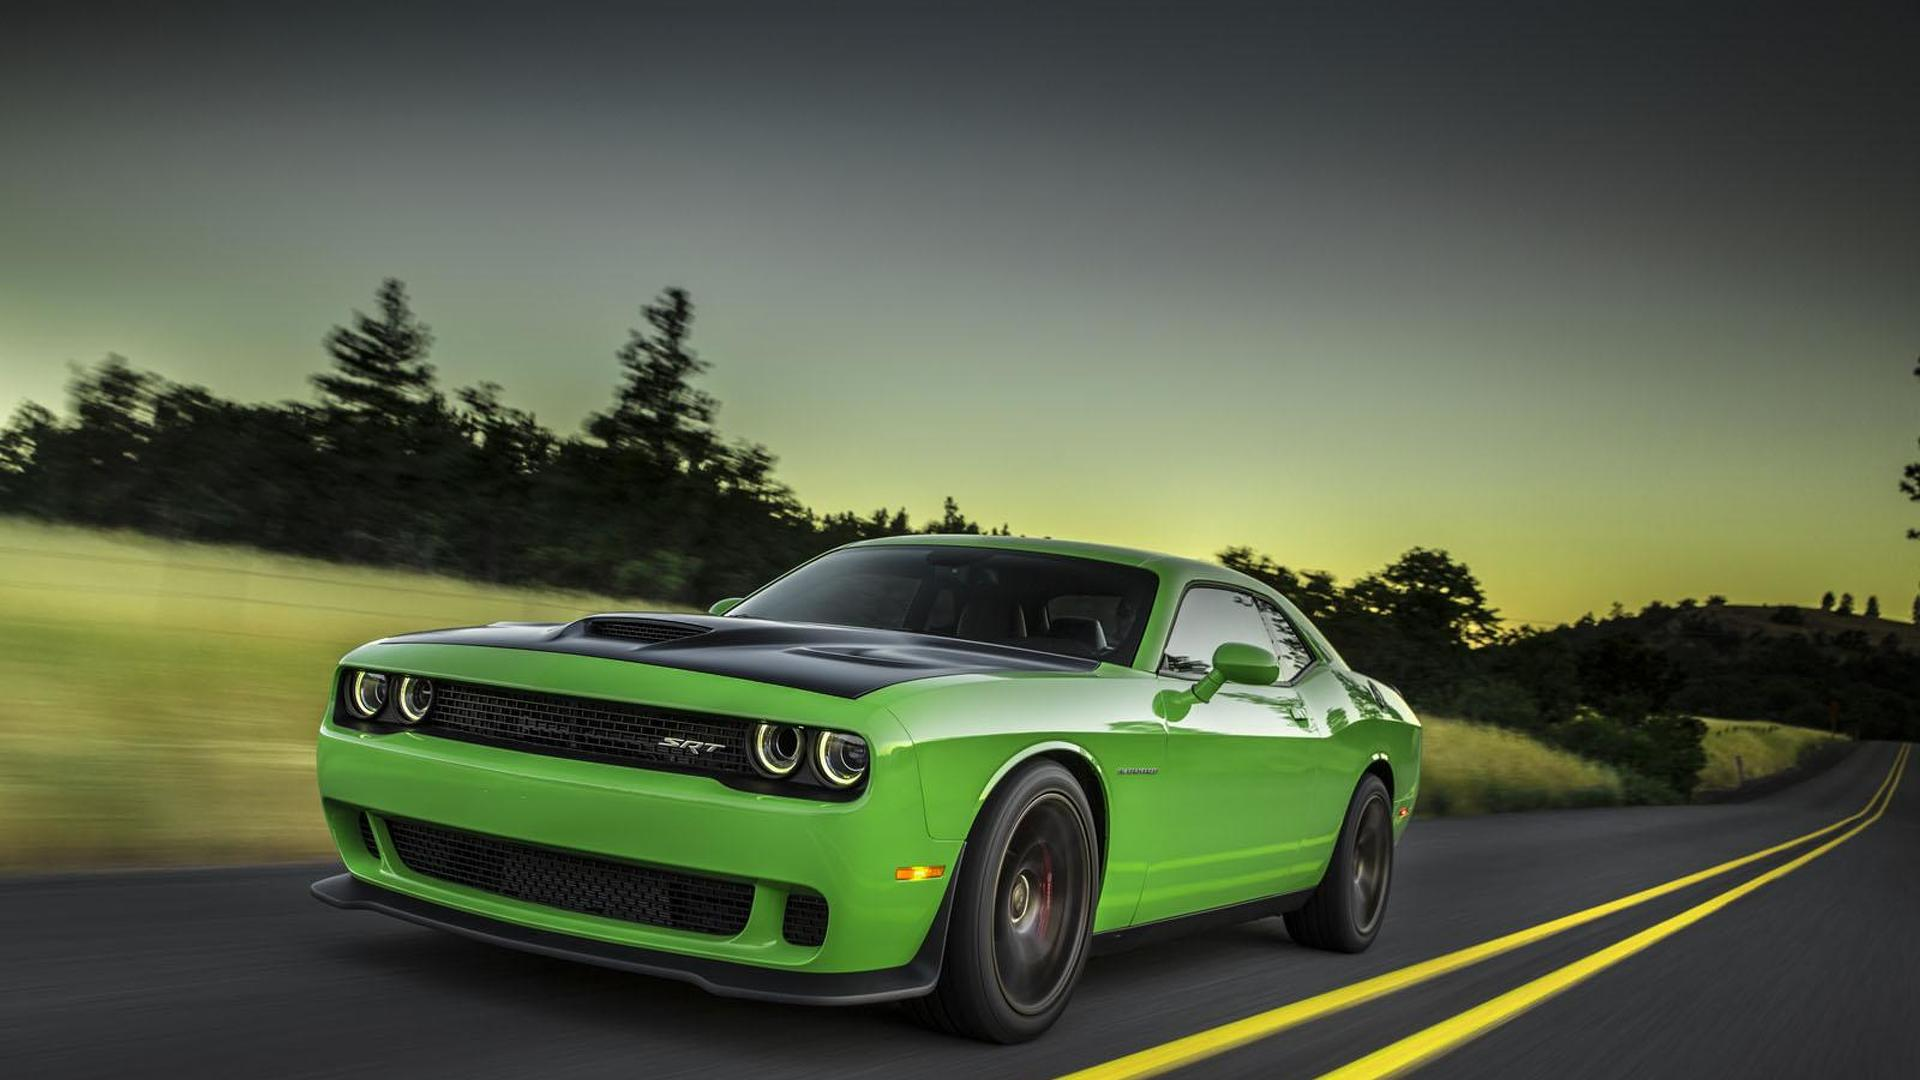 2016 Dodge Charger Challenger Srt Hellcat Announced